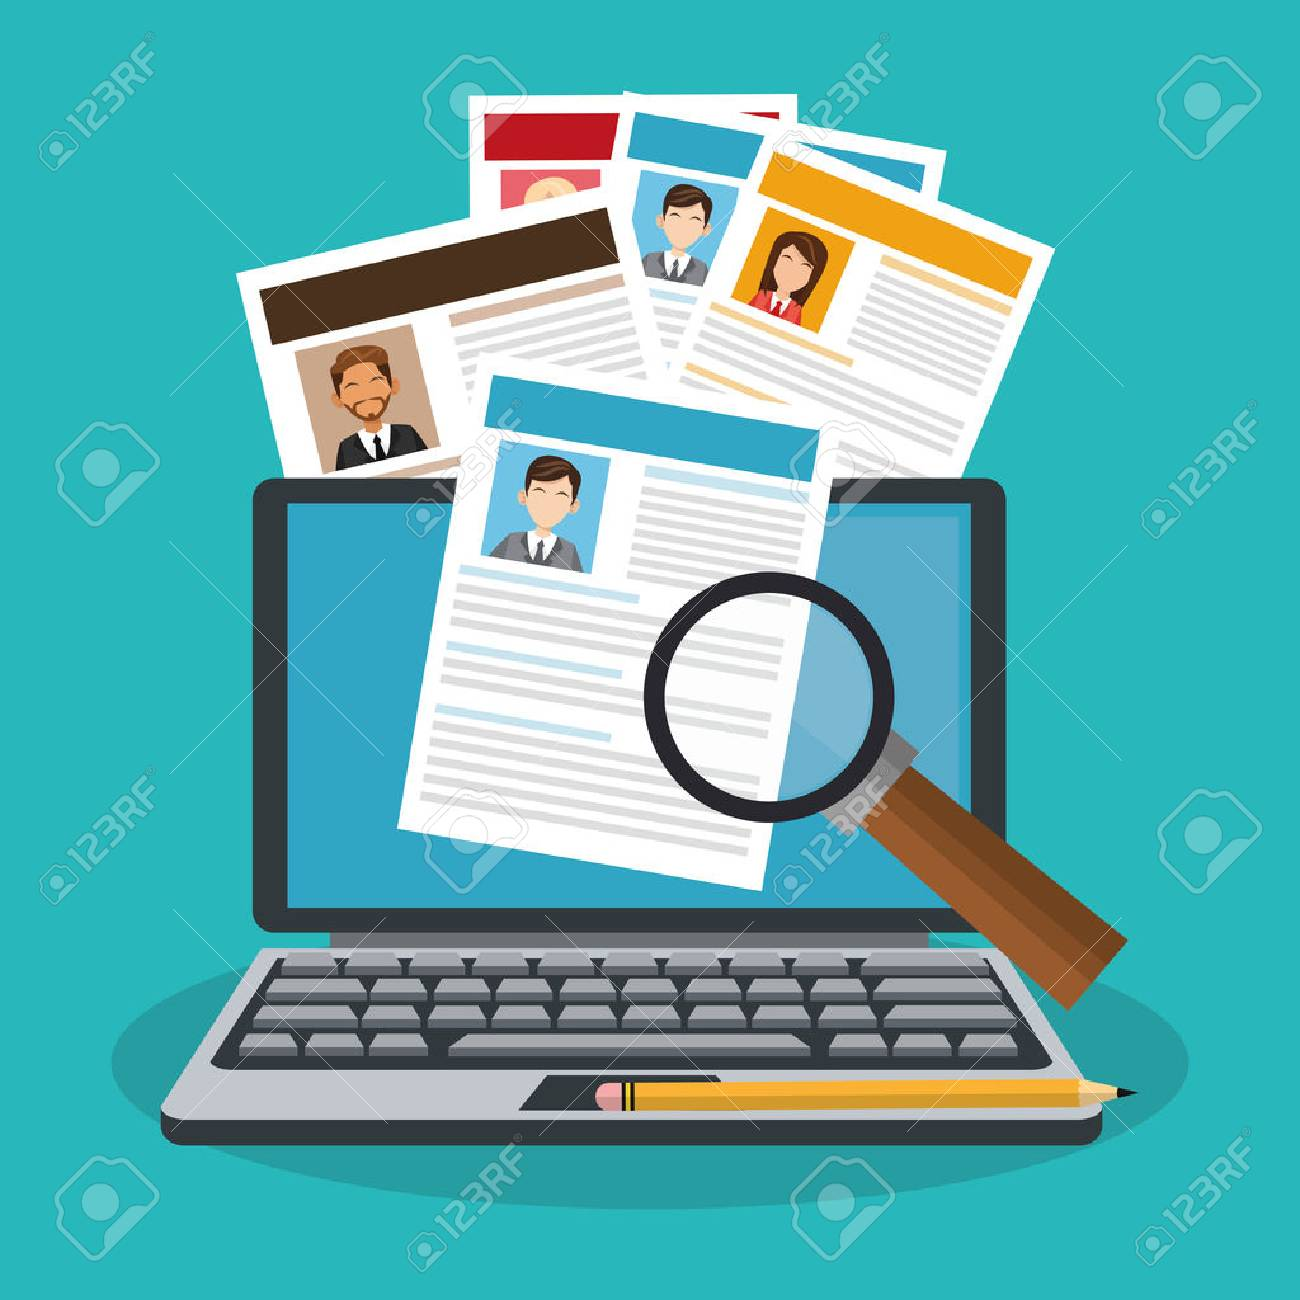 computer and curriculum vitae over blue background. human resources concept. colorful design. vector illustration - 76182970